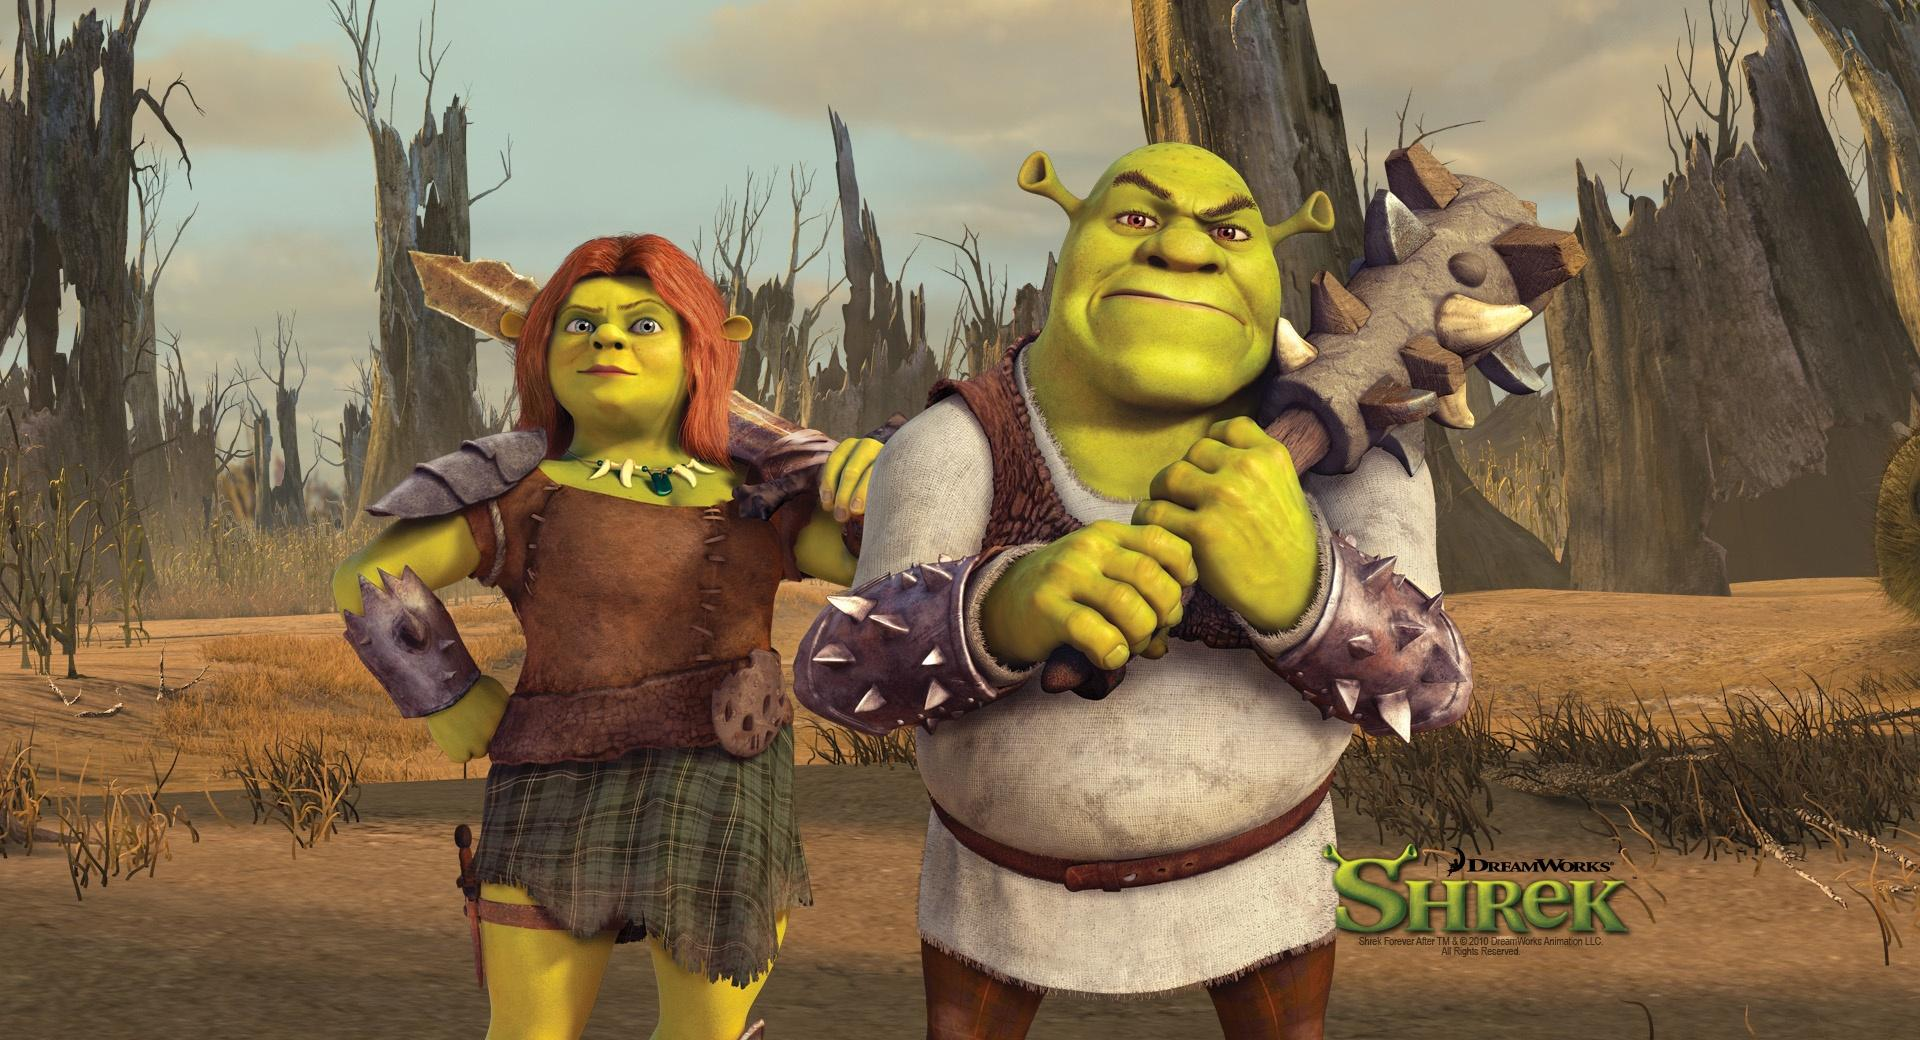 Shrek And Fiona, Shrek The Final Chapter wallpapers HD quality